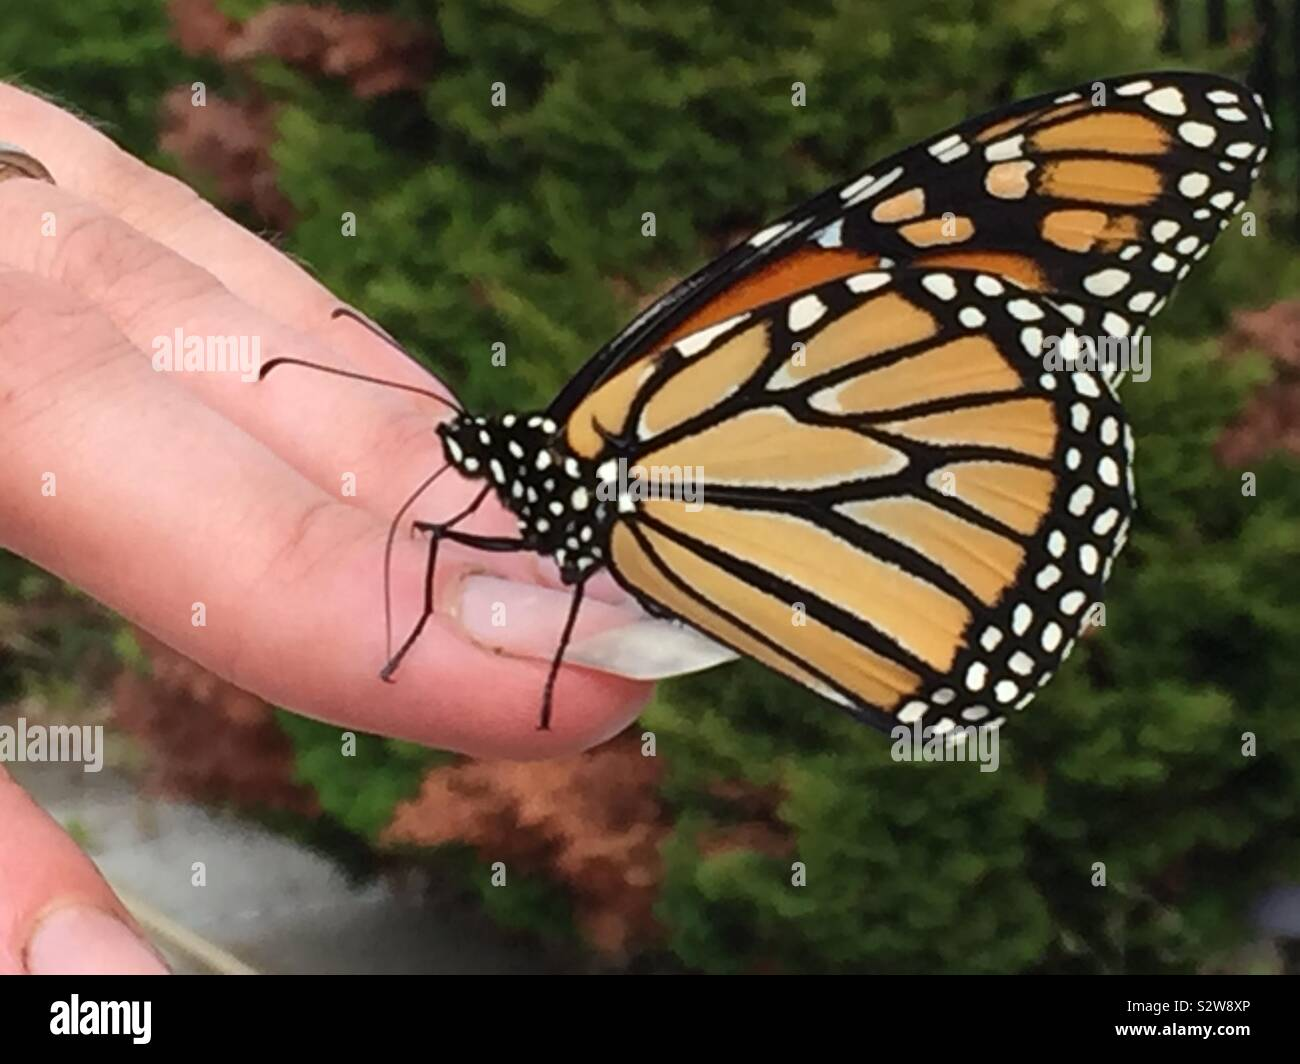 A monarch butterfly on a woman's finger. Stock Photo